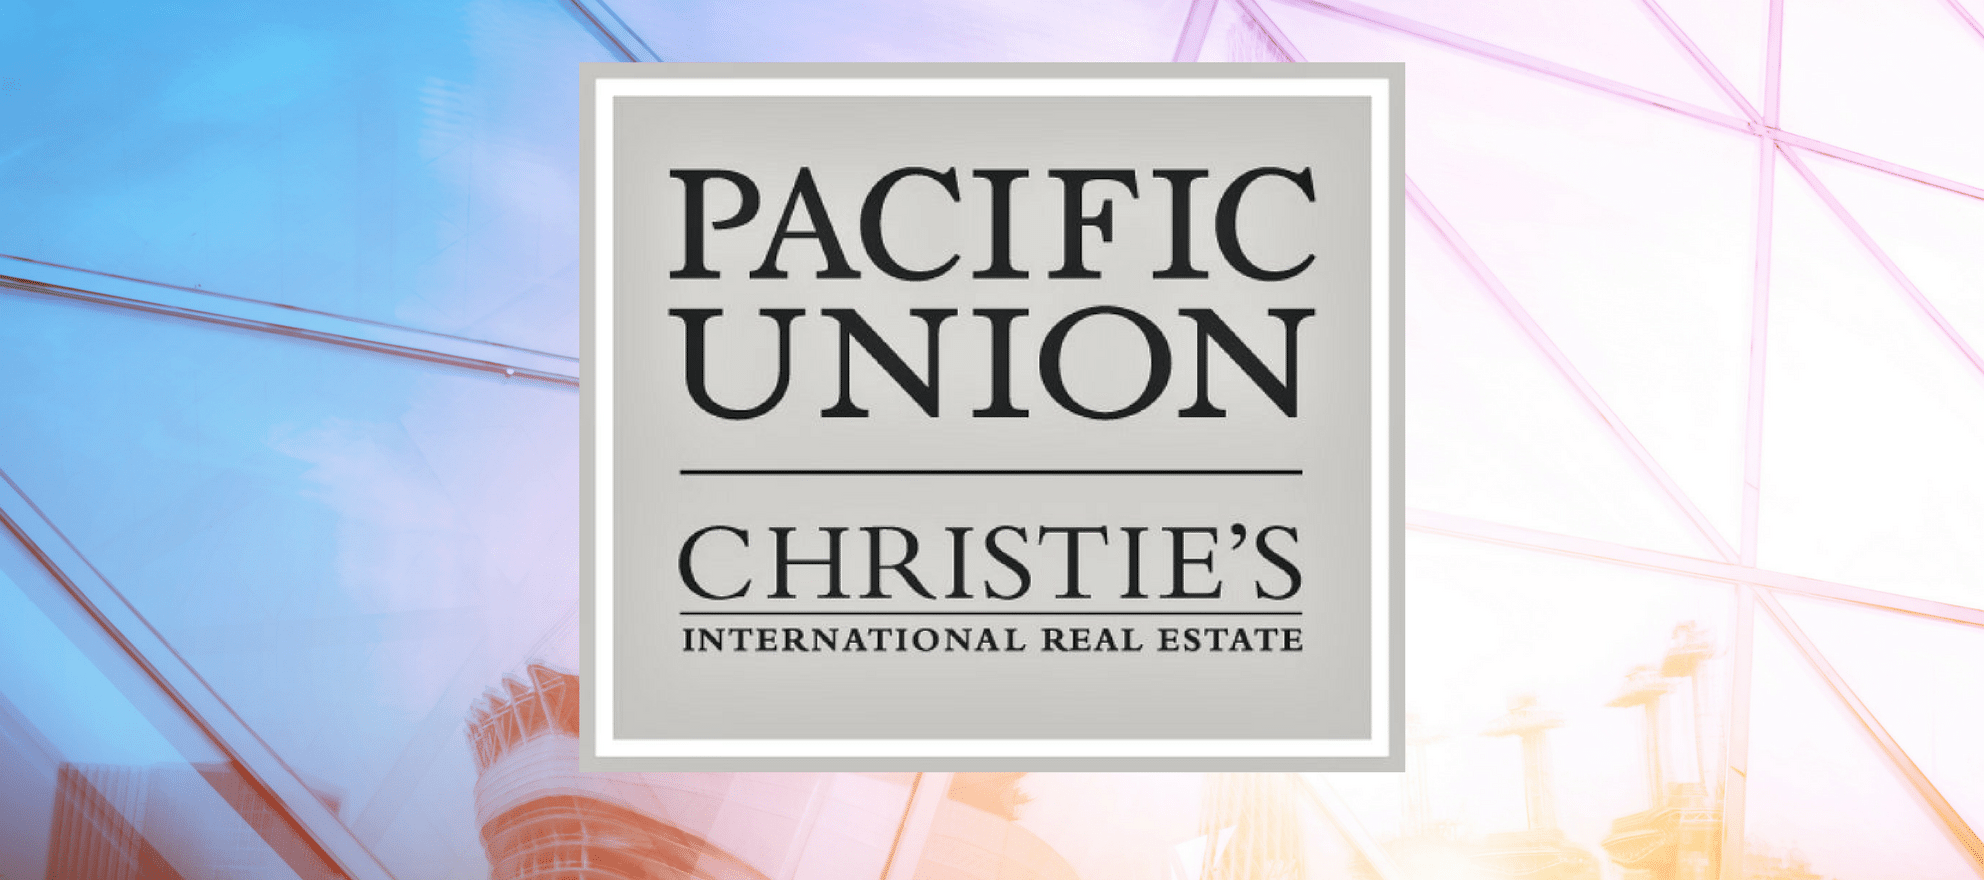 pacific union christie's international real estate